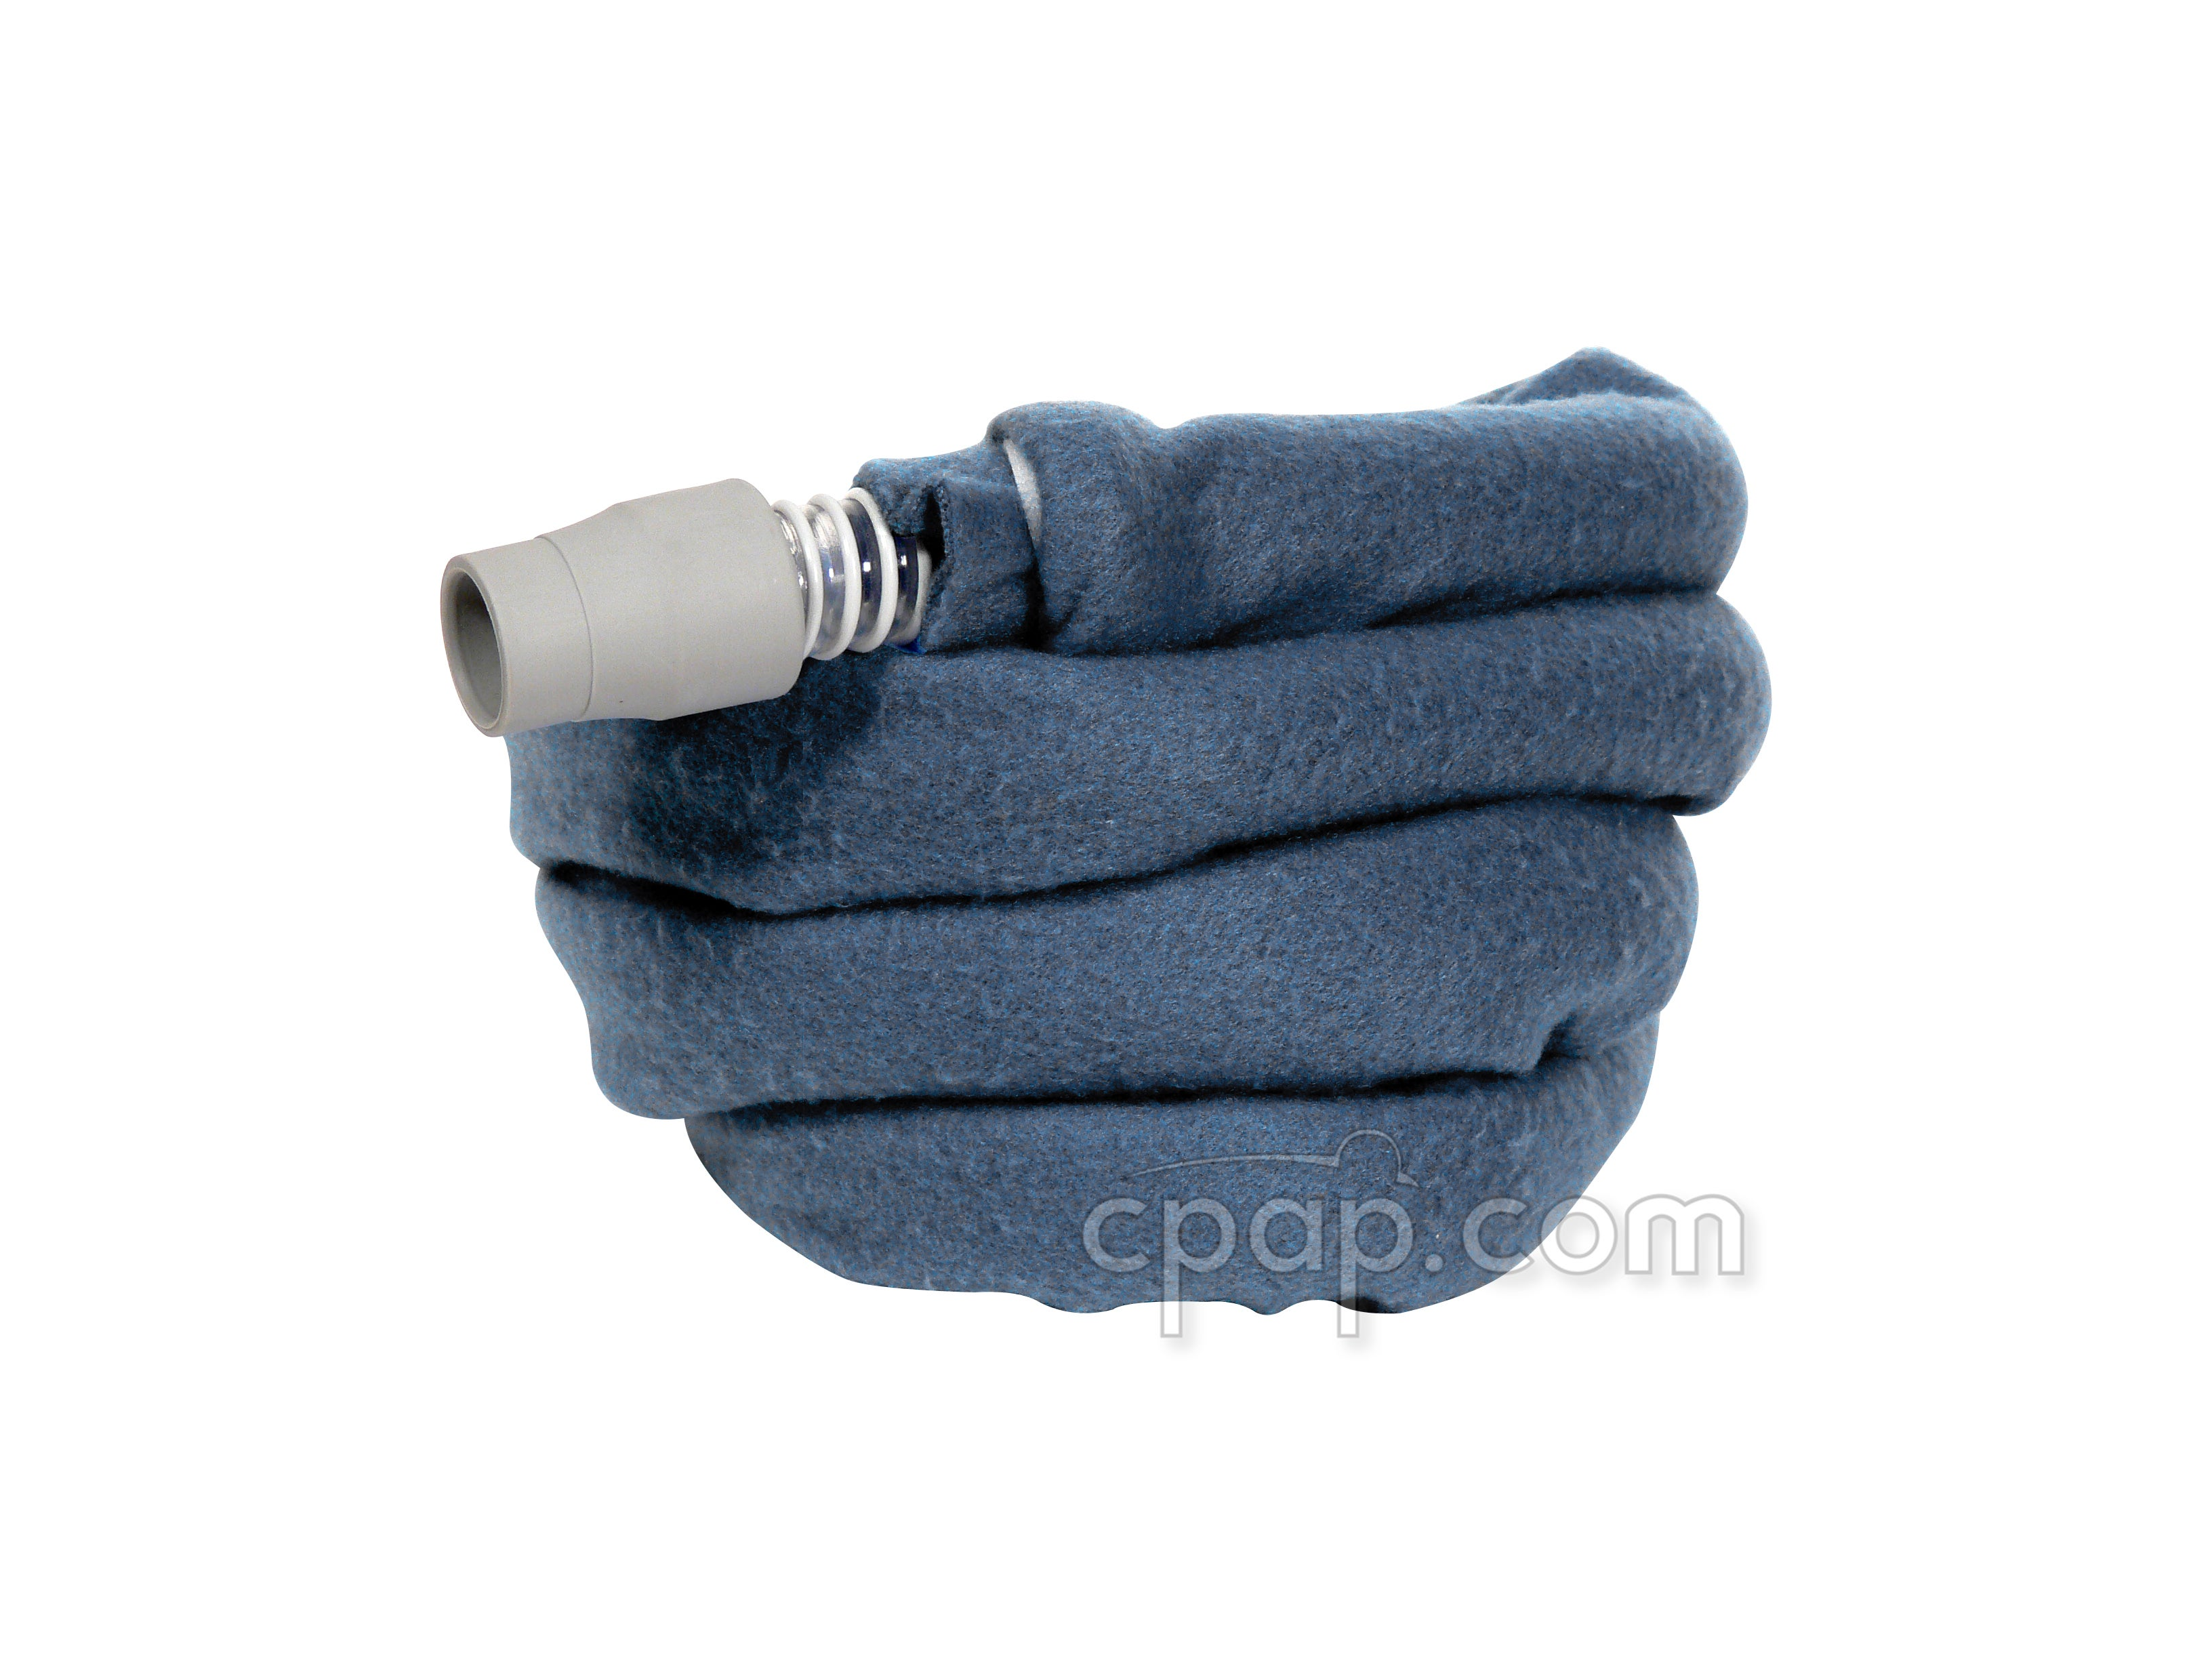 SnuggleHose Cover - Coiled on Hose Blue  (not included)